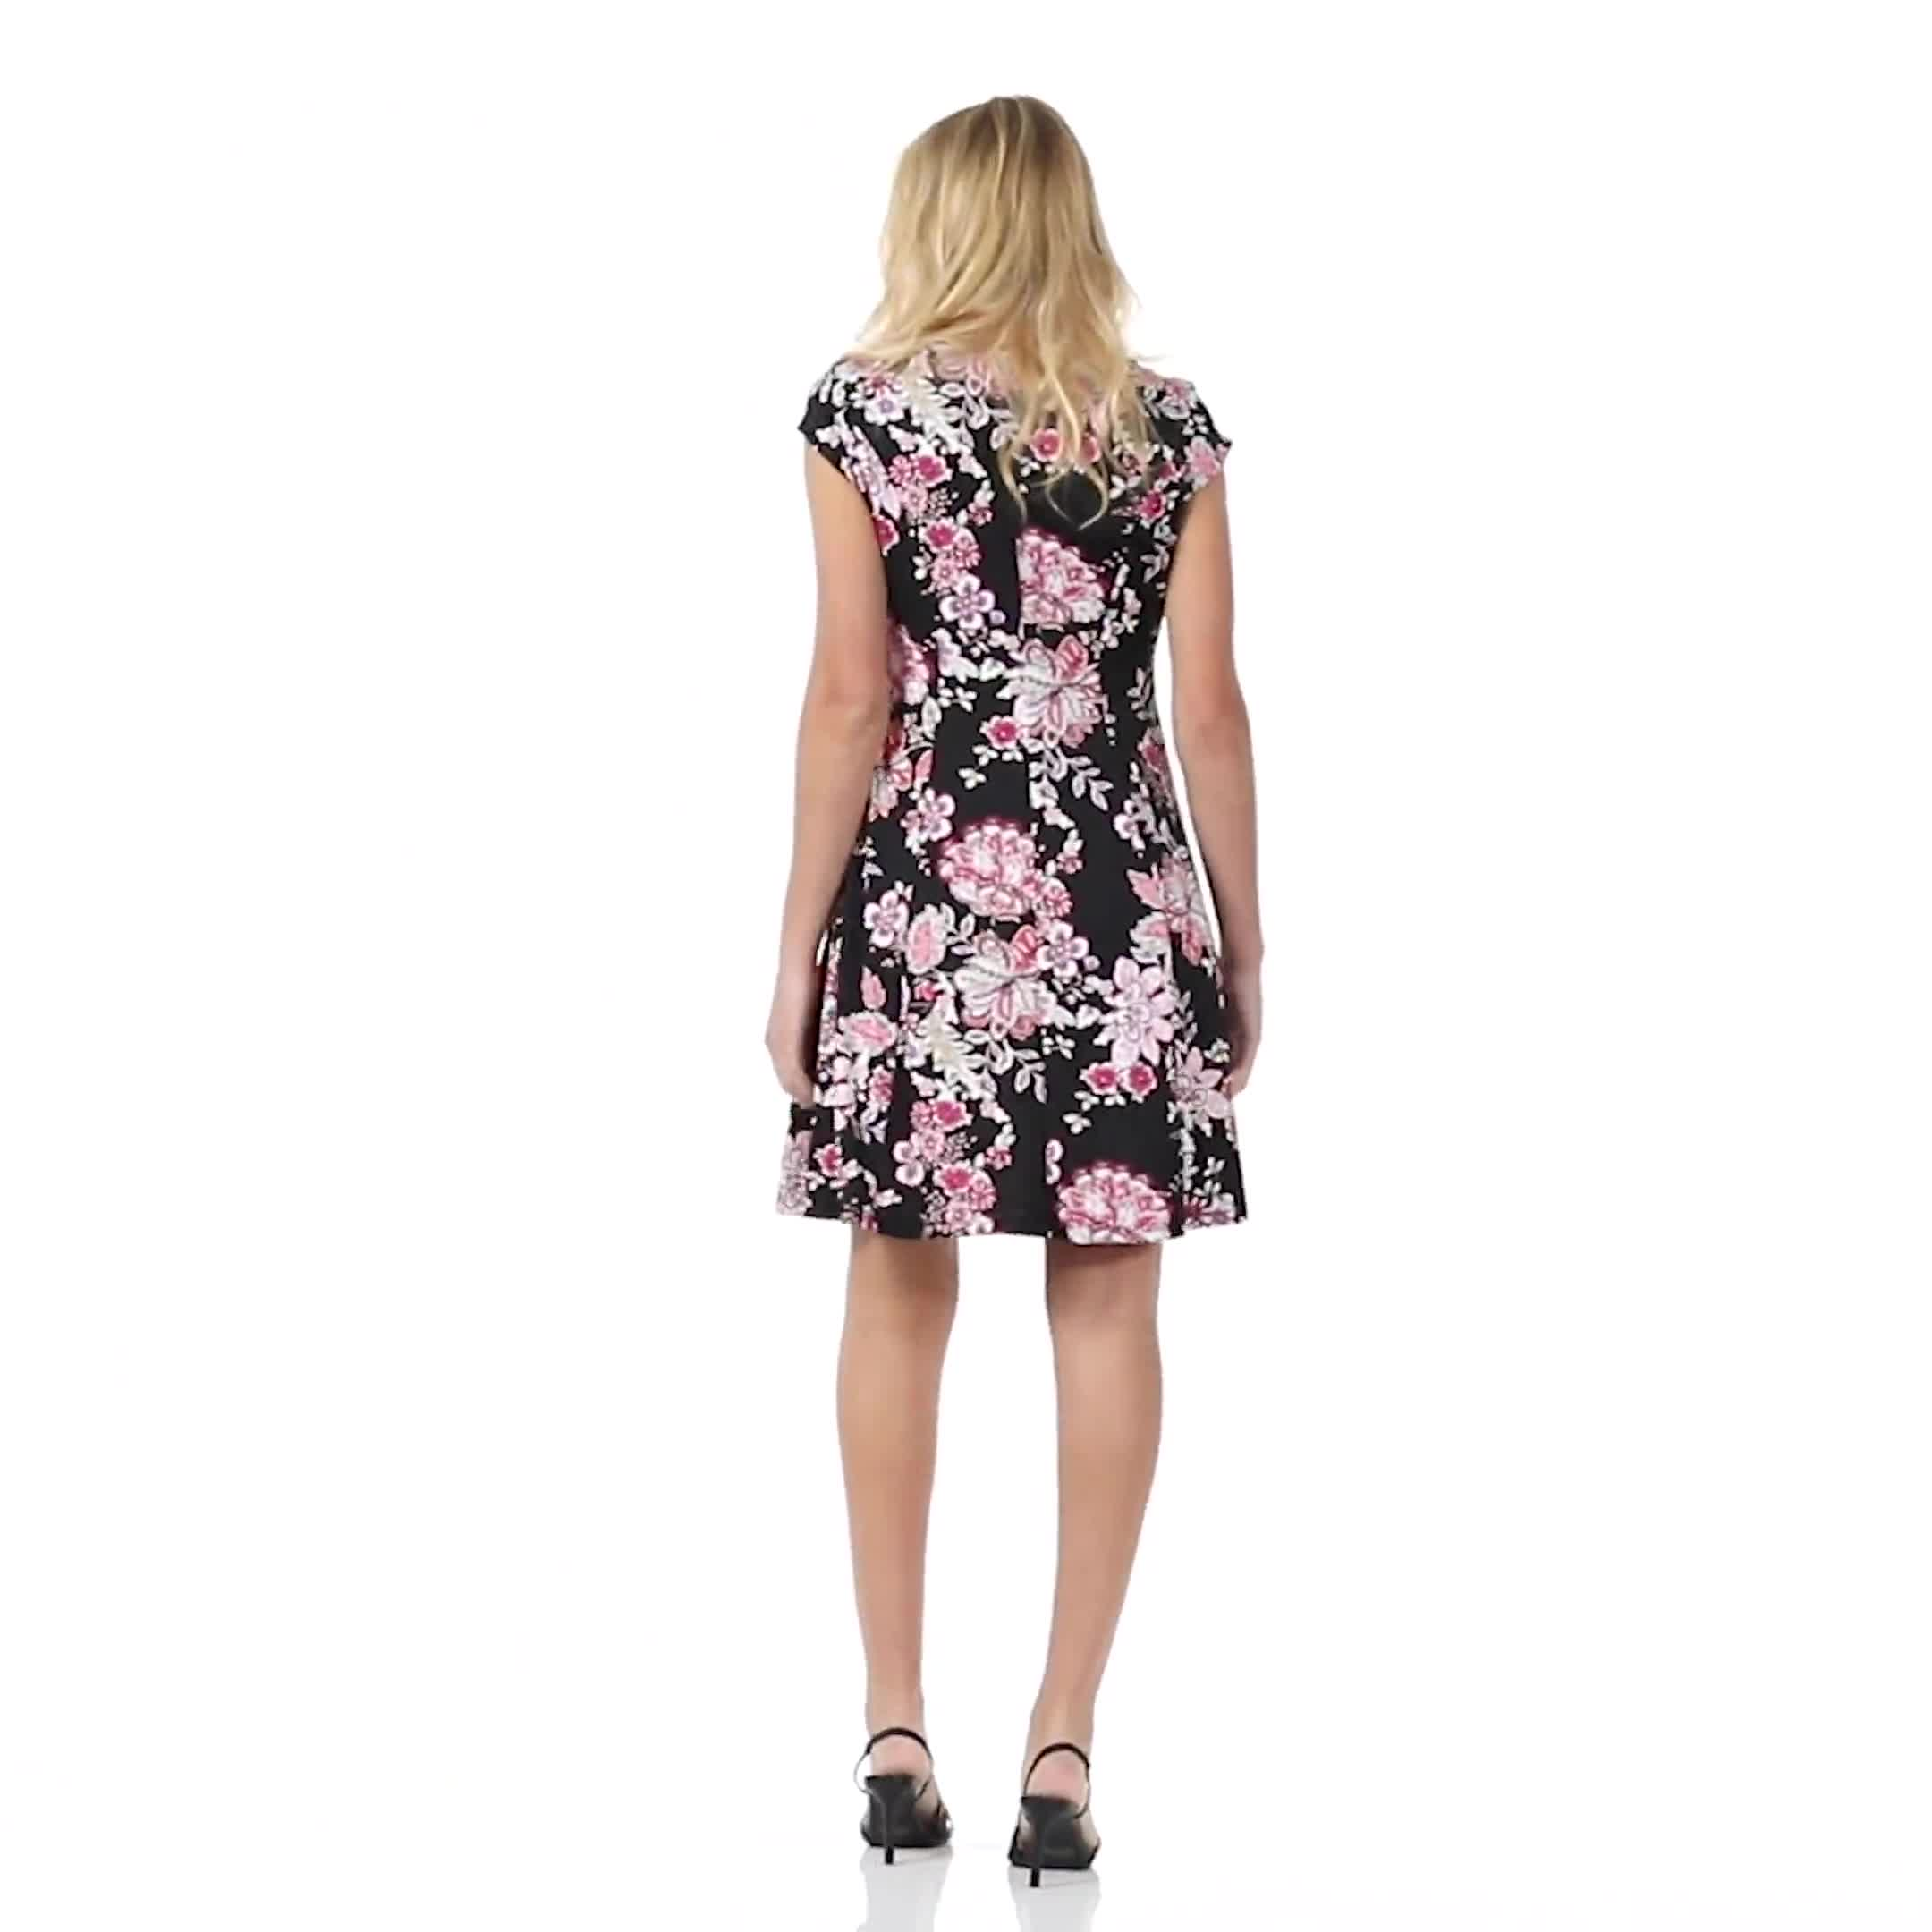 Floral Fit and Flare Dress - Video